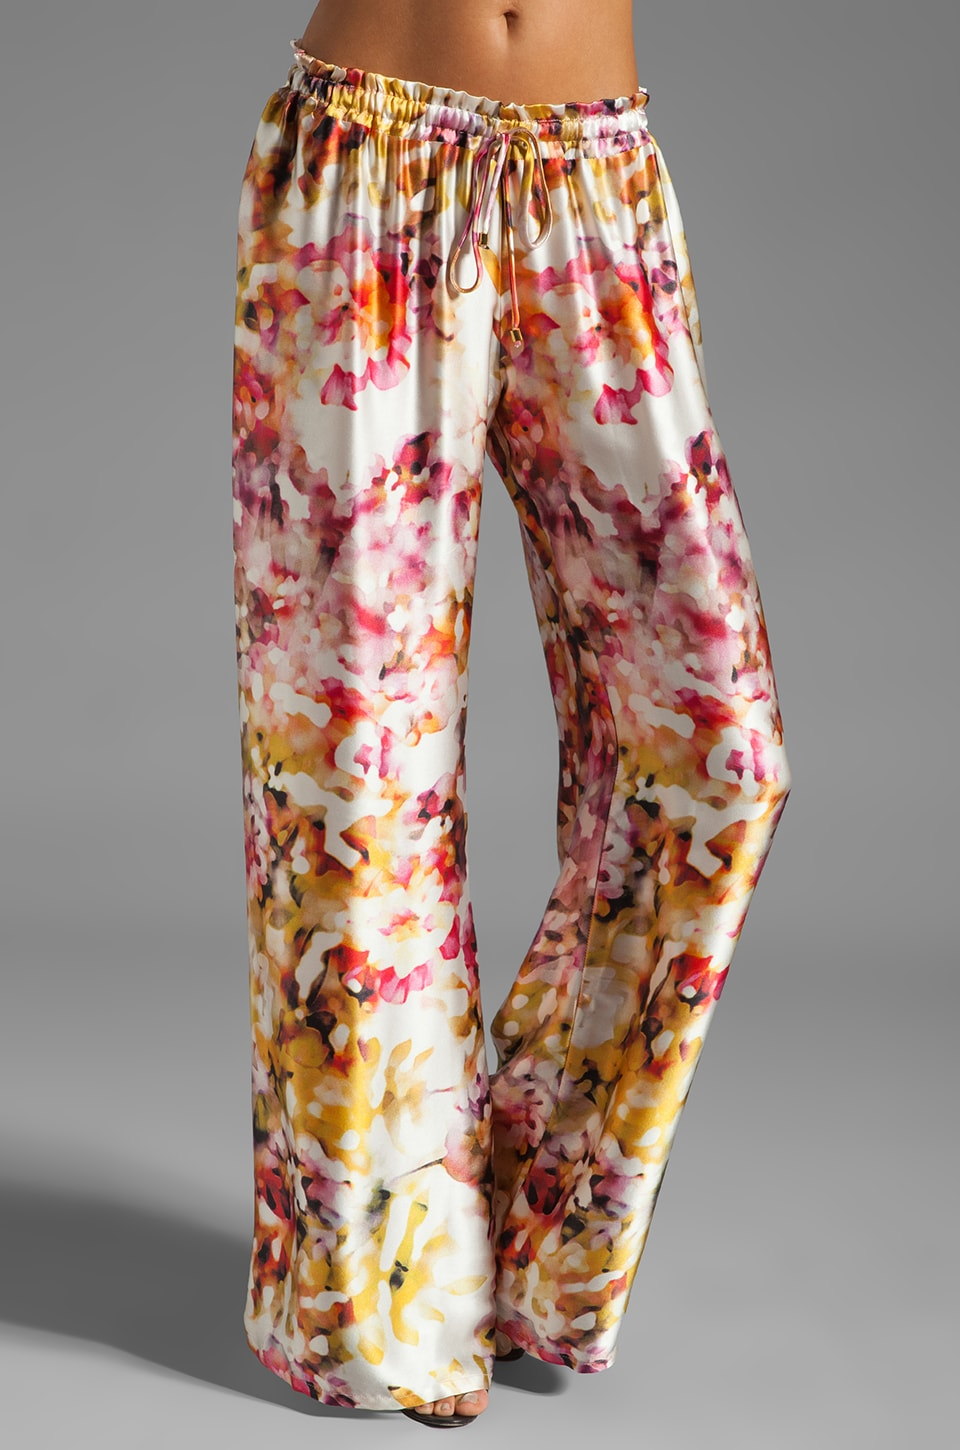 Karina Grimaldi Maui Print Pant in Water Color Floral